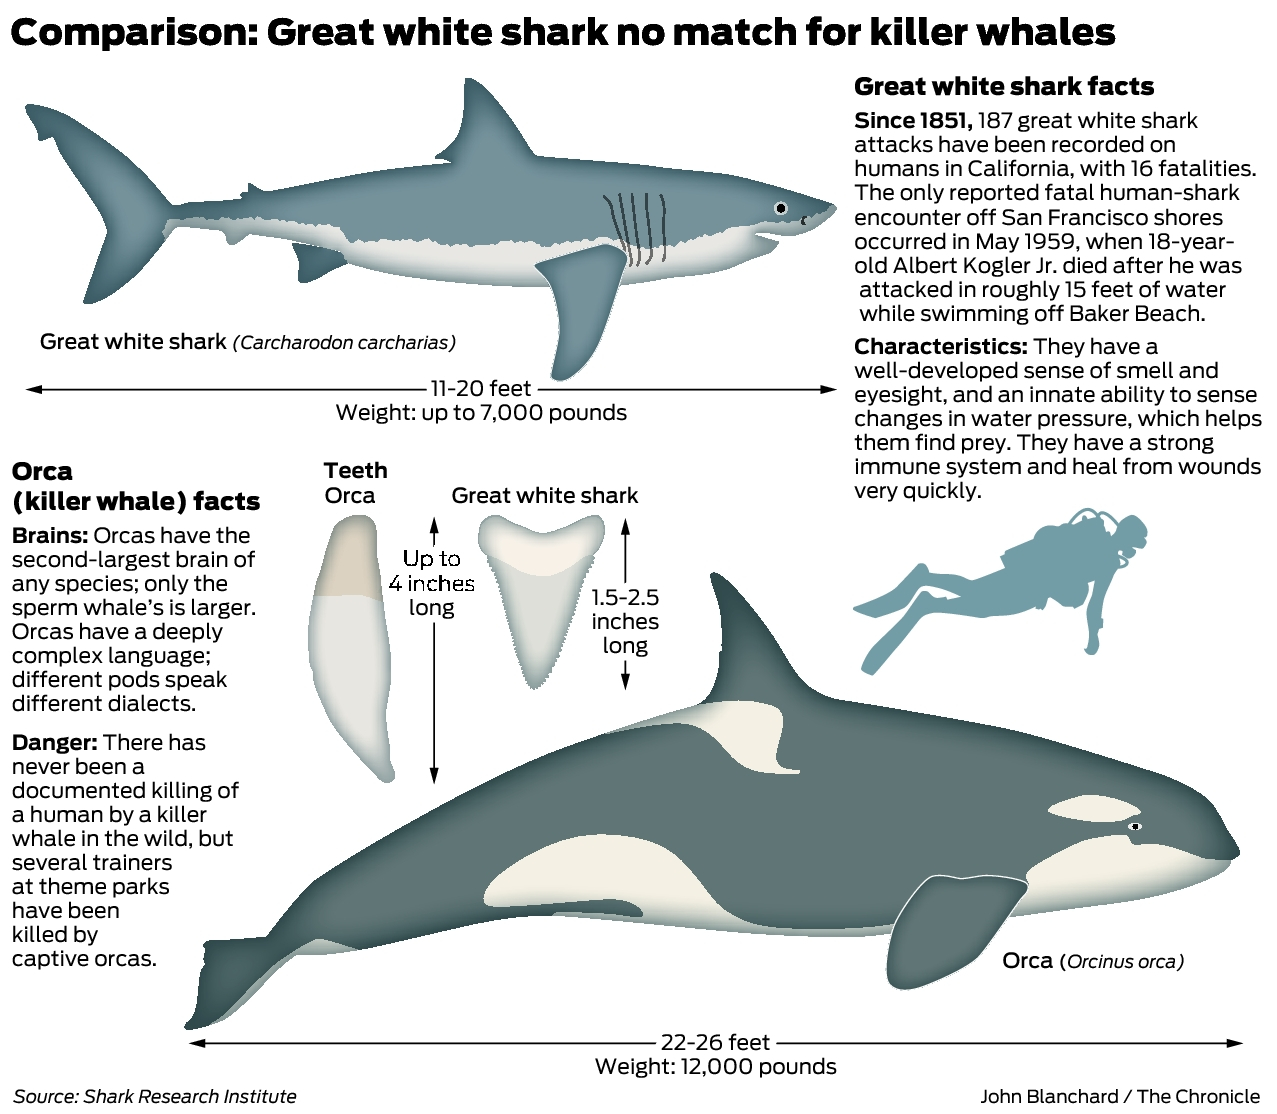 Great whites the most fearsome ocean predators? New findings